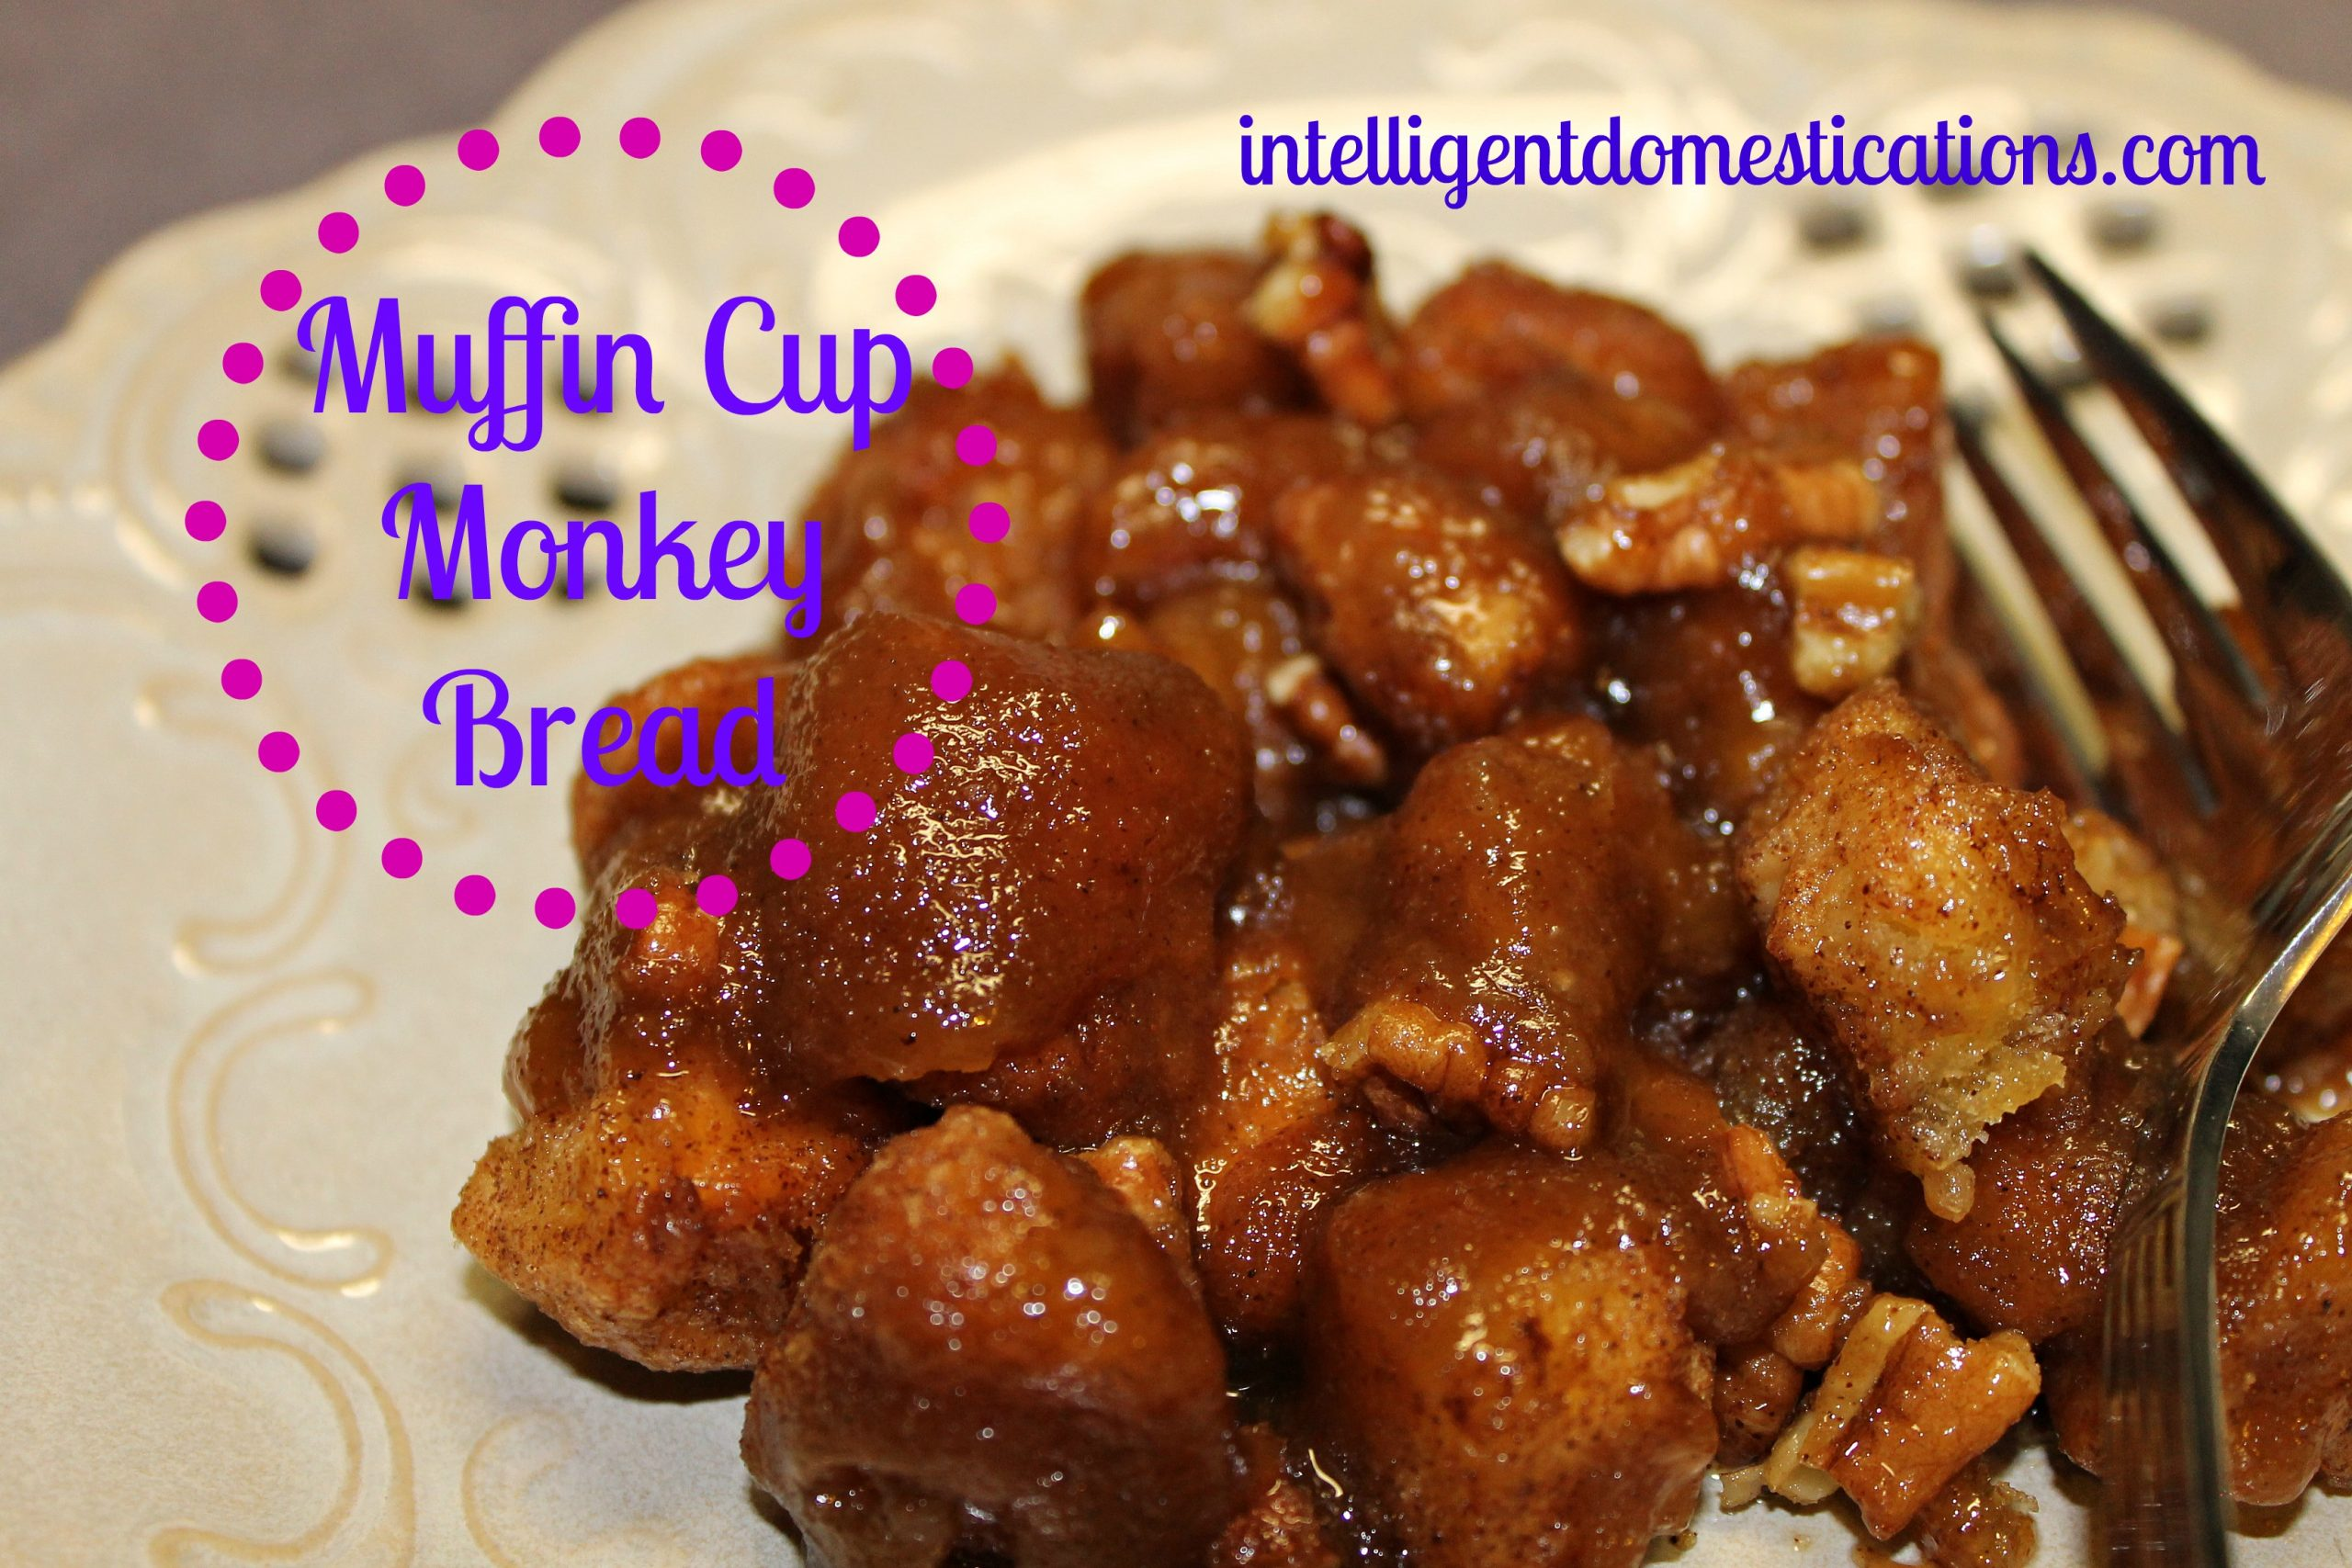 Muffin Cup Monkey Bread